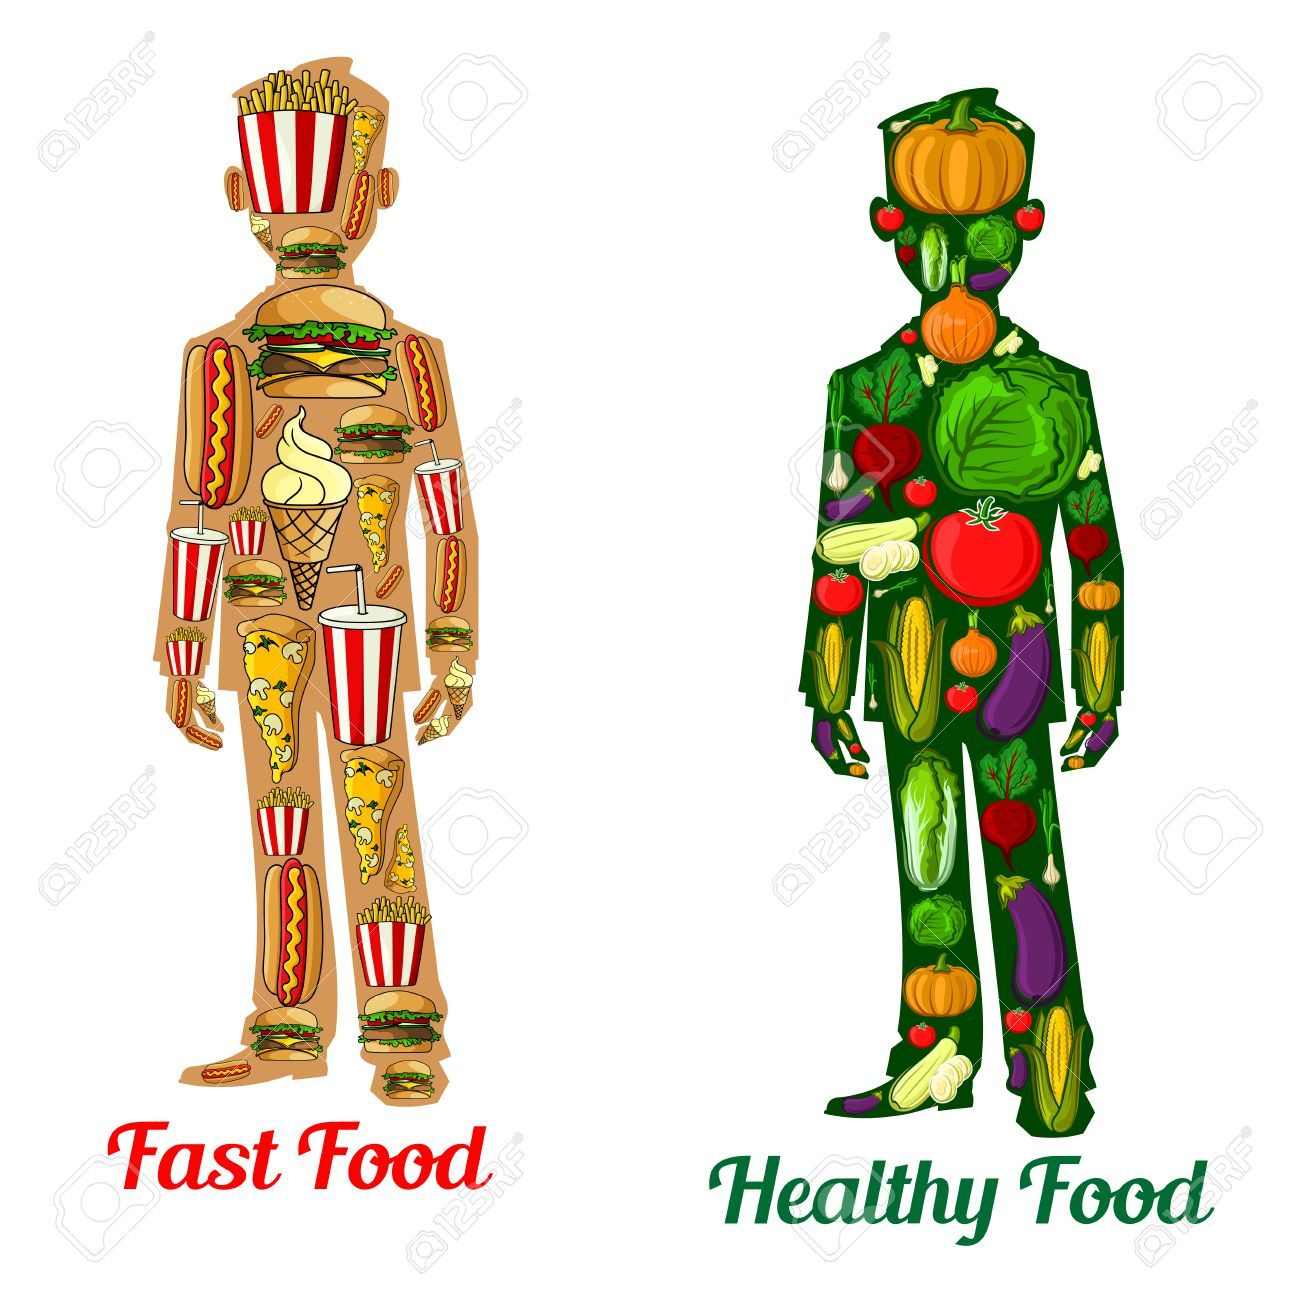 64899903 Healthy Diet Nutrition Vs Fast Food Human Body Icons With